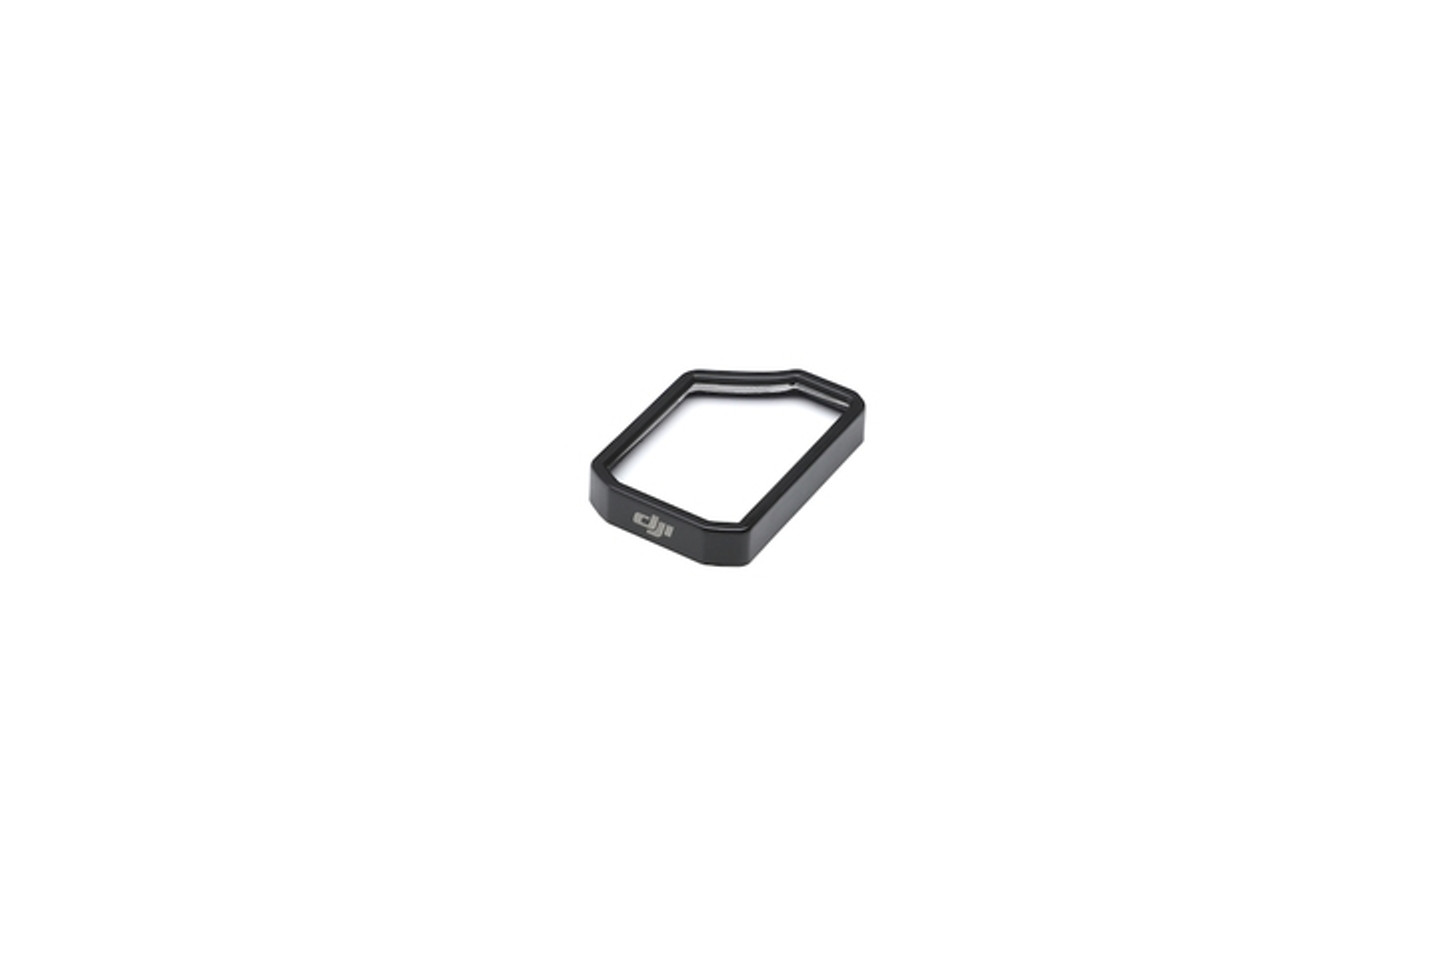 Corrective Lens for DJI Goggles